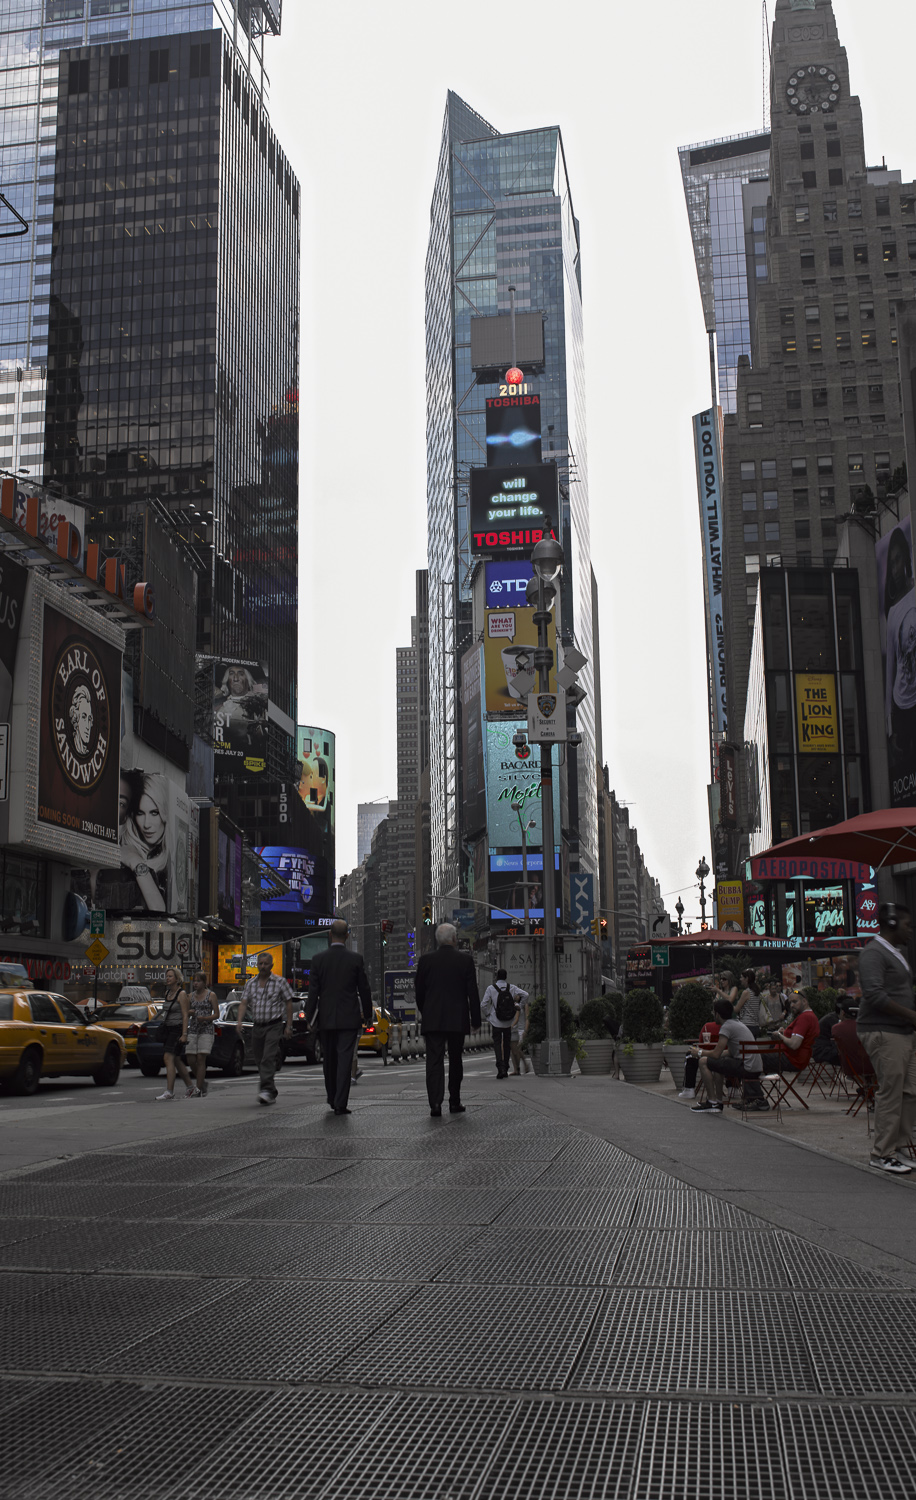 Times Square - New York City, 2011